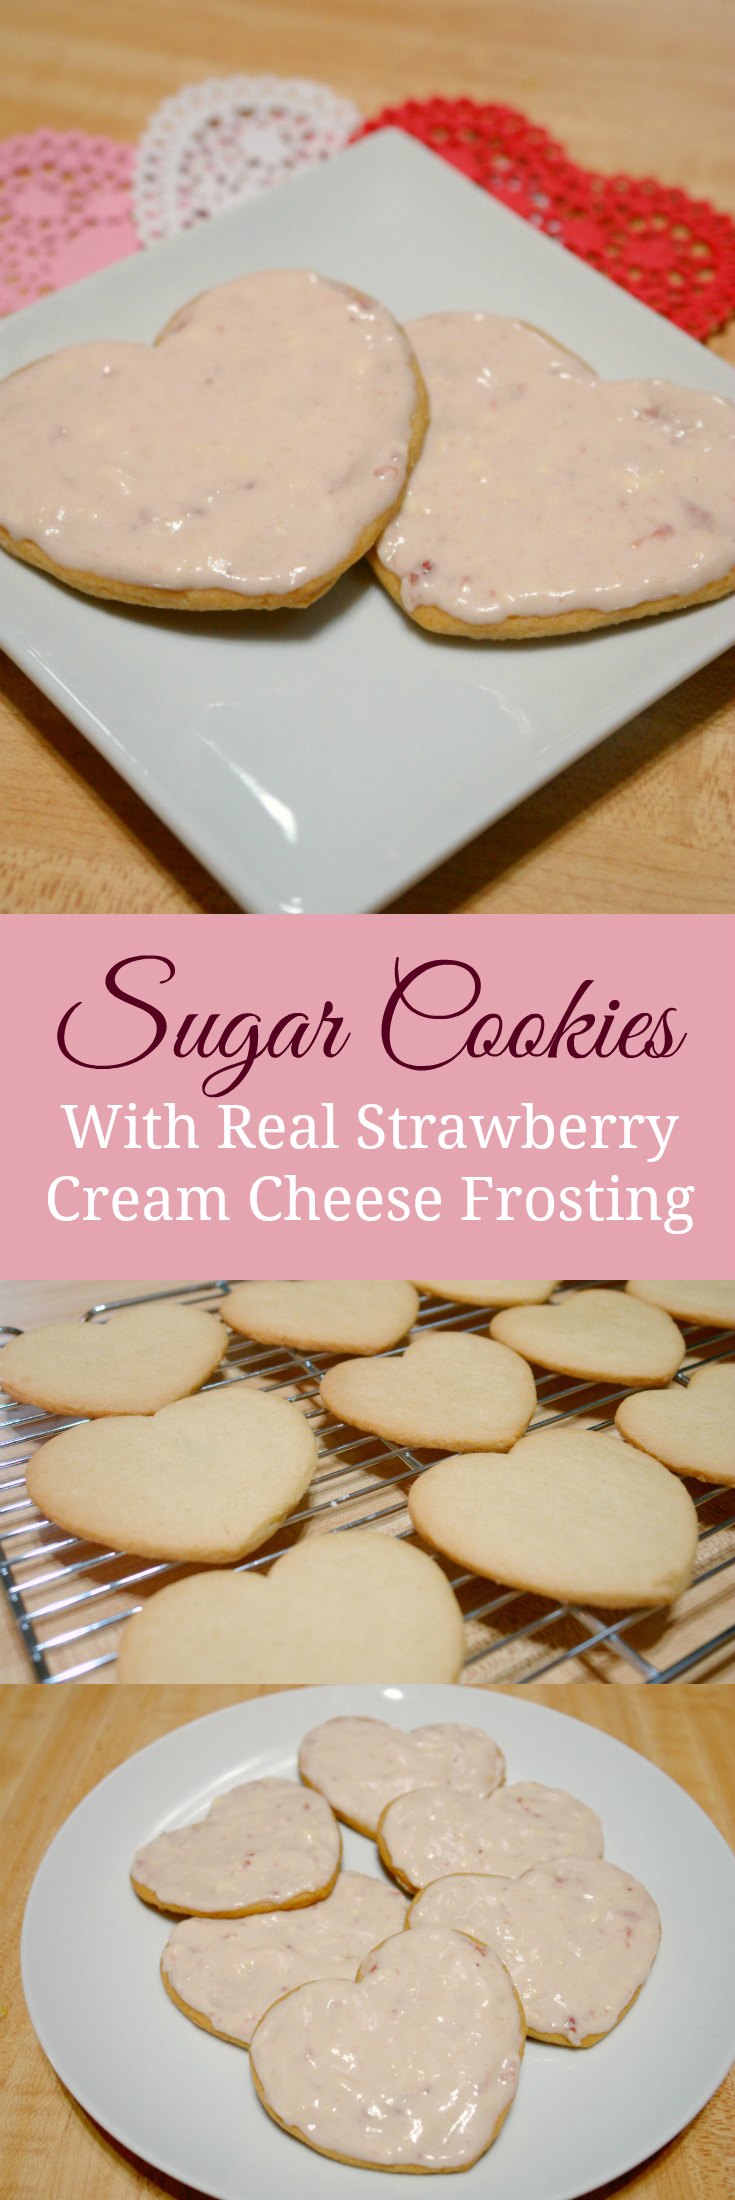 Strawberry Sugar Cookies with Real Strawberry Cream Cheese Frosting